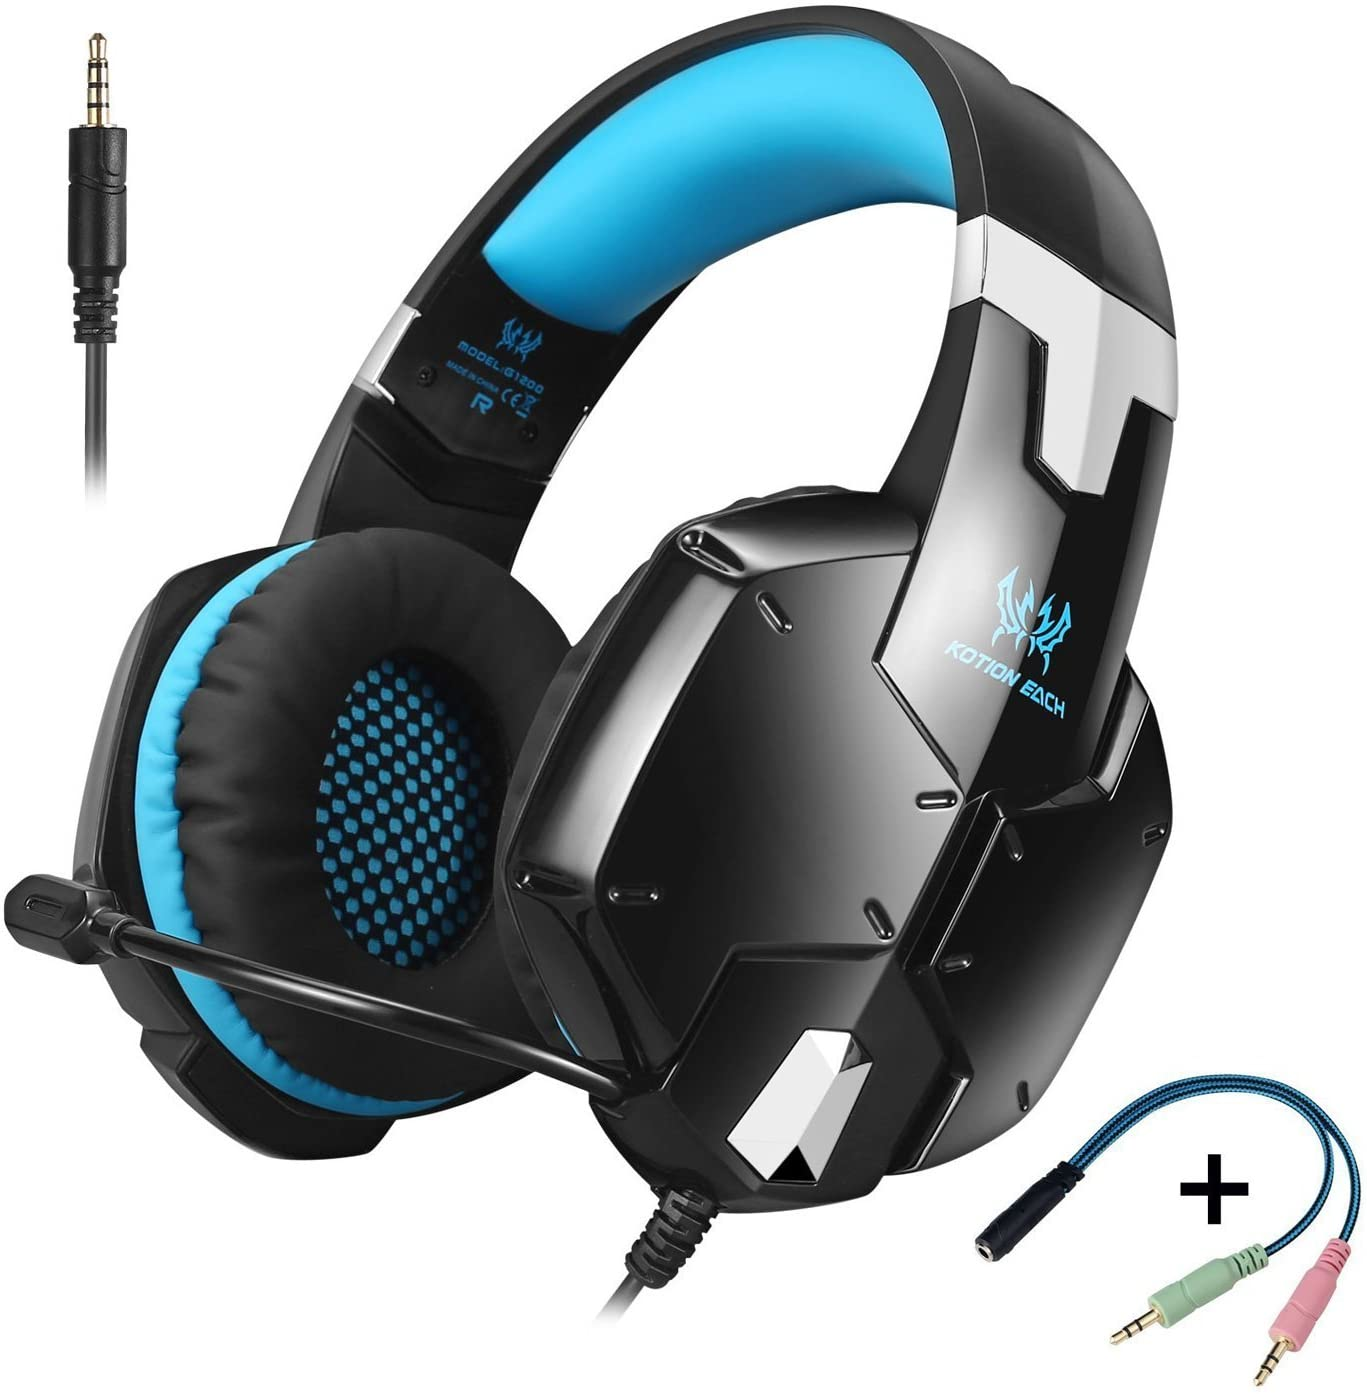 Meiertop Gaming Headset for PS4 New Xbox One Professional 3.5mm PC Game Bass Headphones Stereo Noise Isolation Over-ear Headset with Mic Microphone for PS4 Laptop Computer and Smart Phone(Blue)